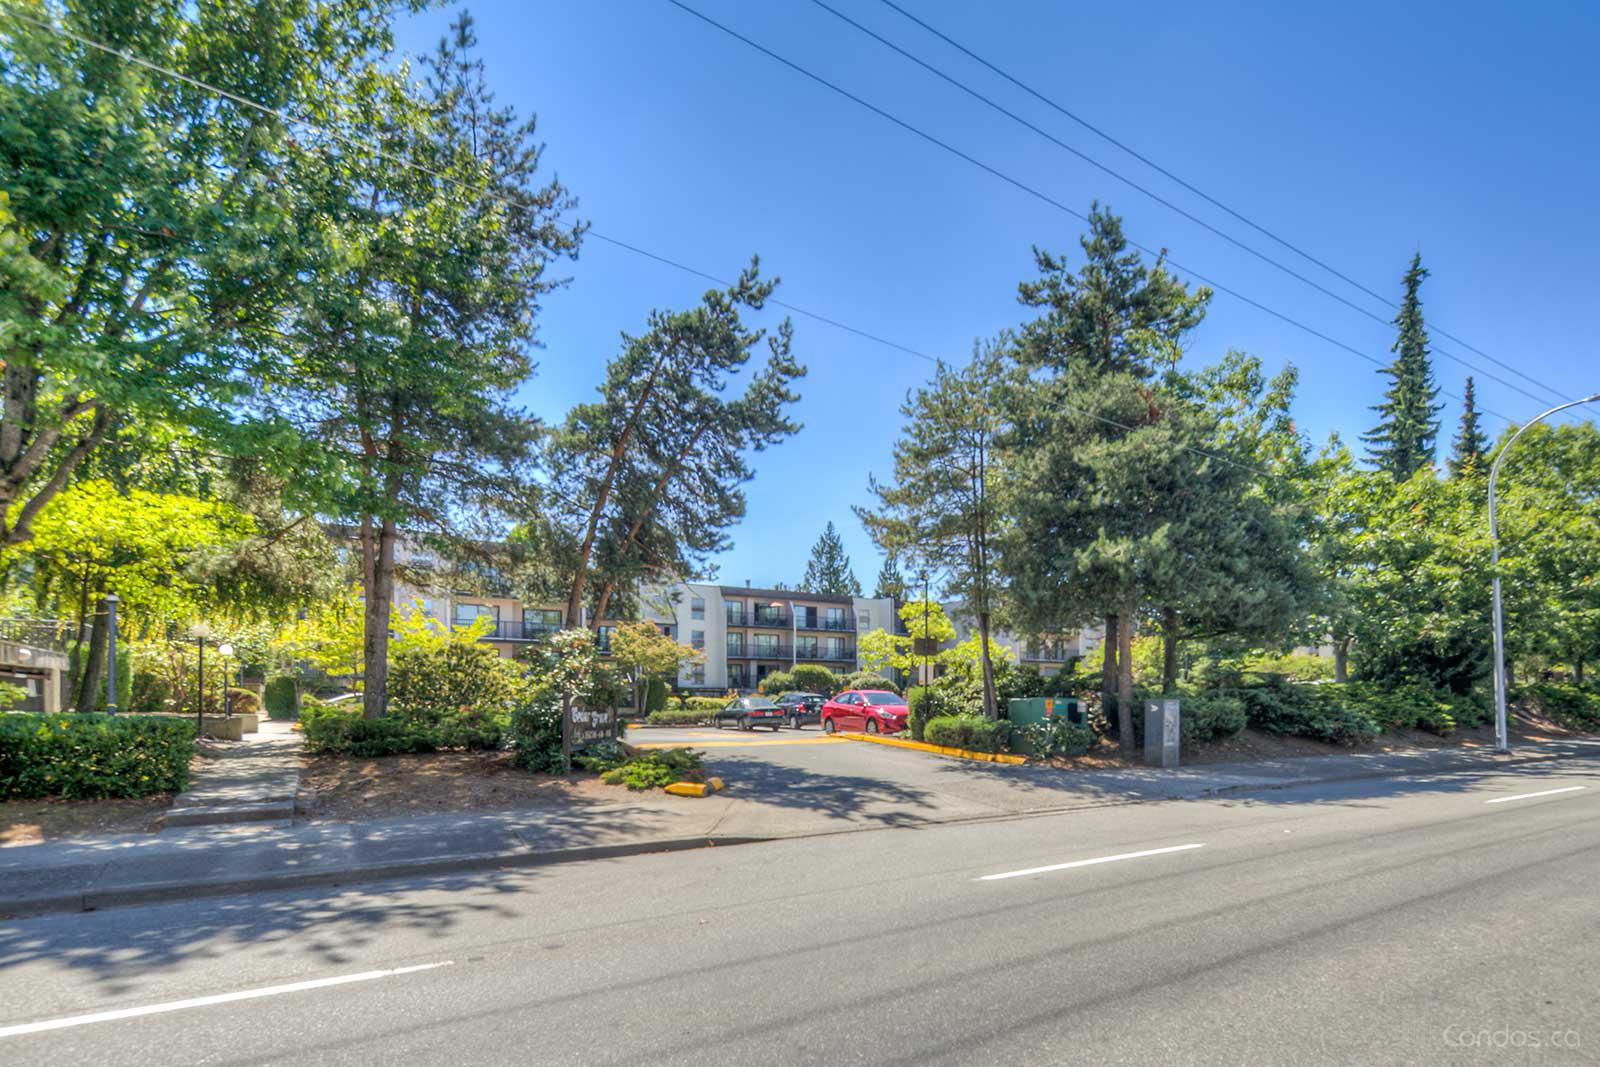 Cedar Grove at 15268 100 Ave, Surrey 1